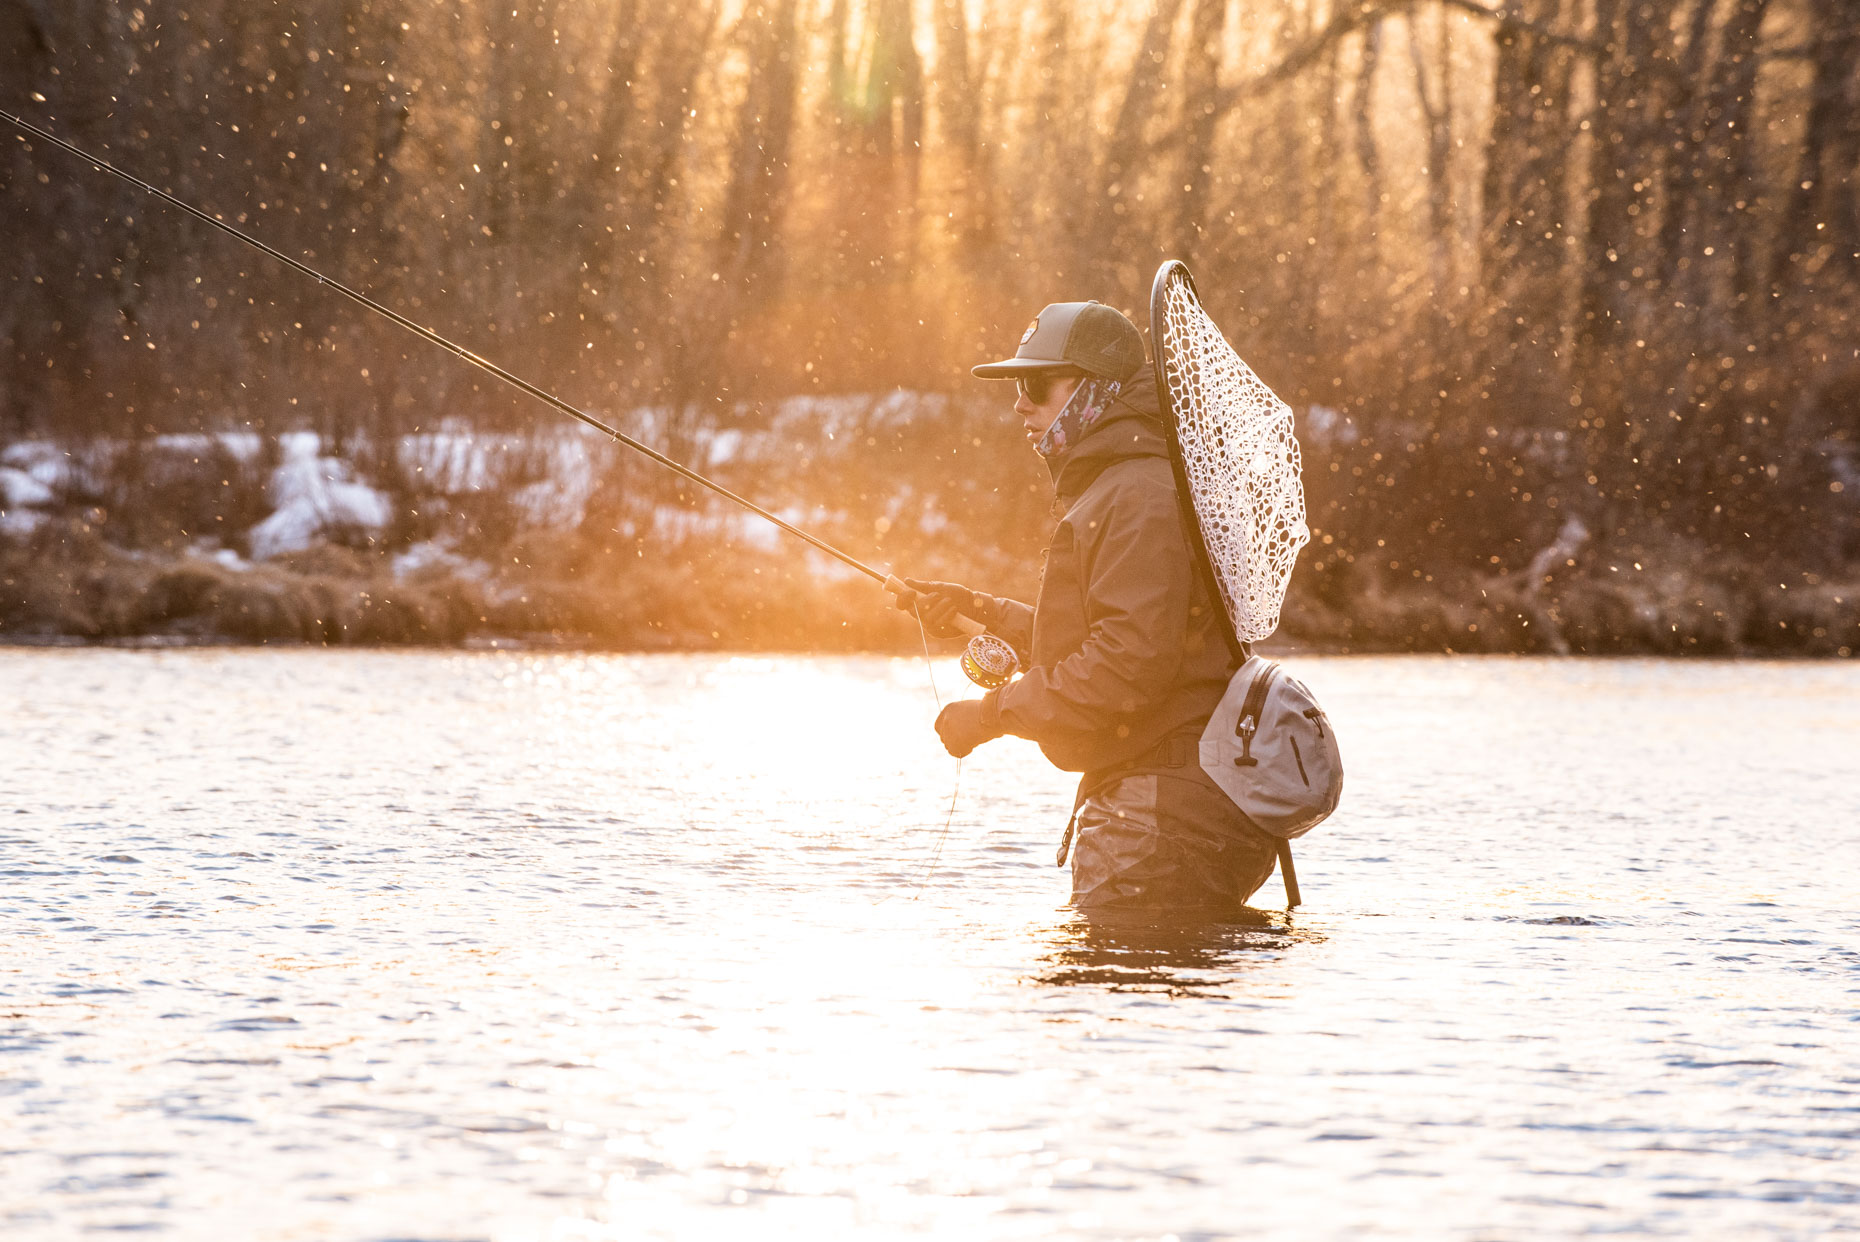 Fly fisherman in winter